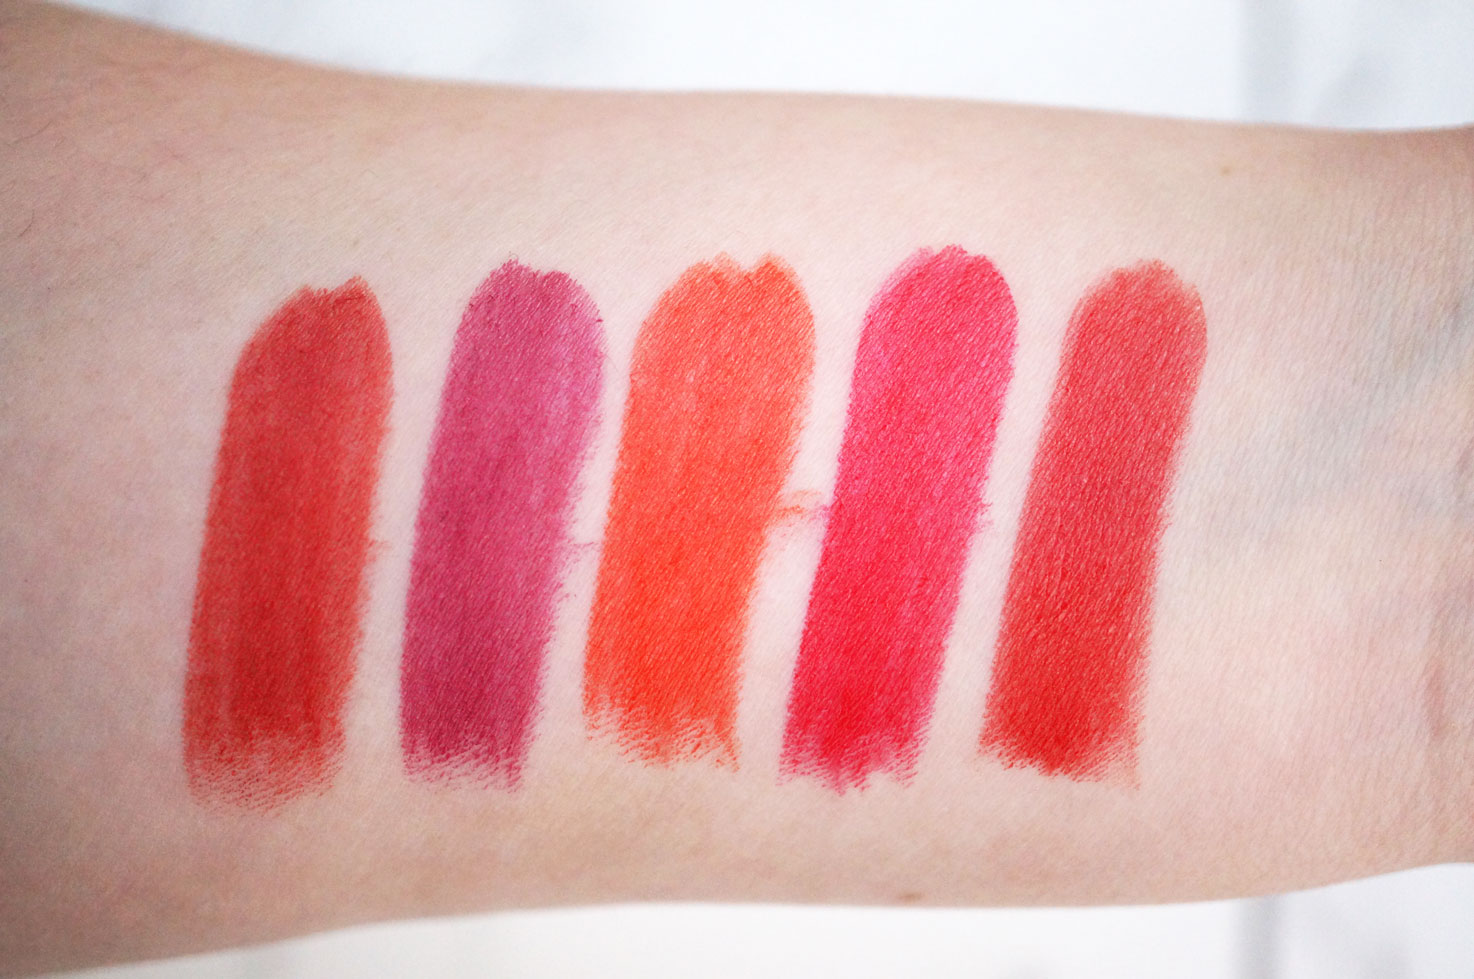 Gloss Interdit Ultra-Shiny Color Plumping Effect by Givenchy #7